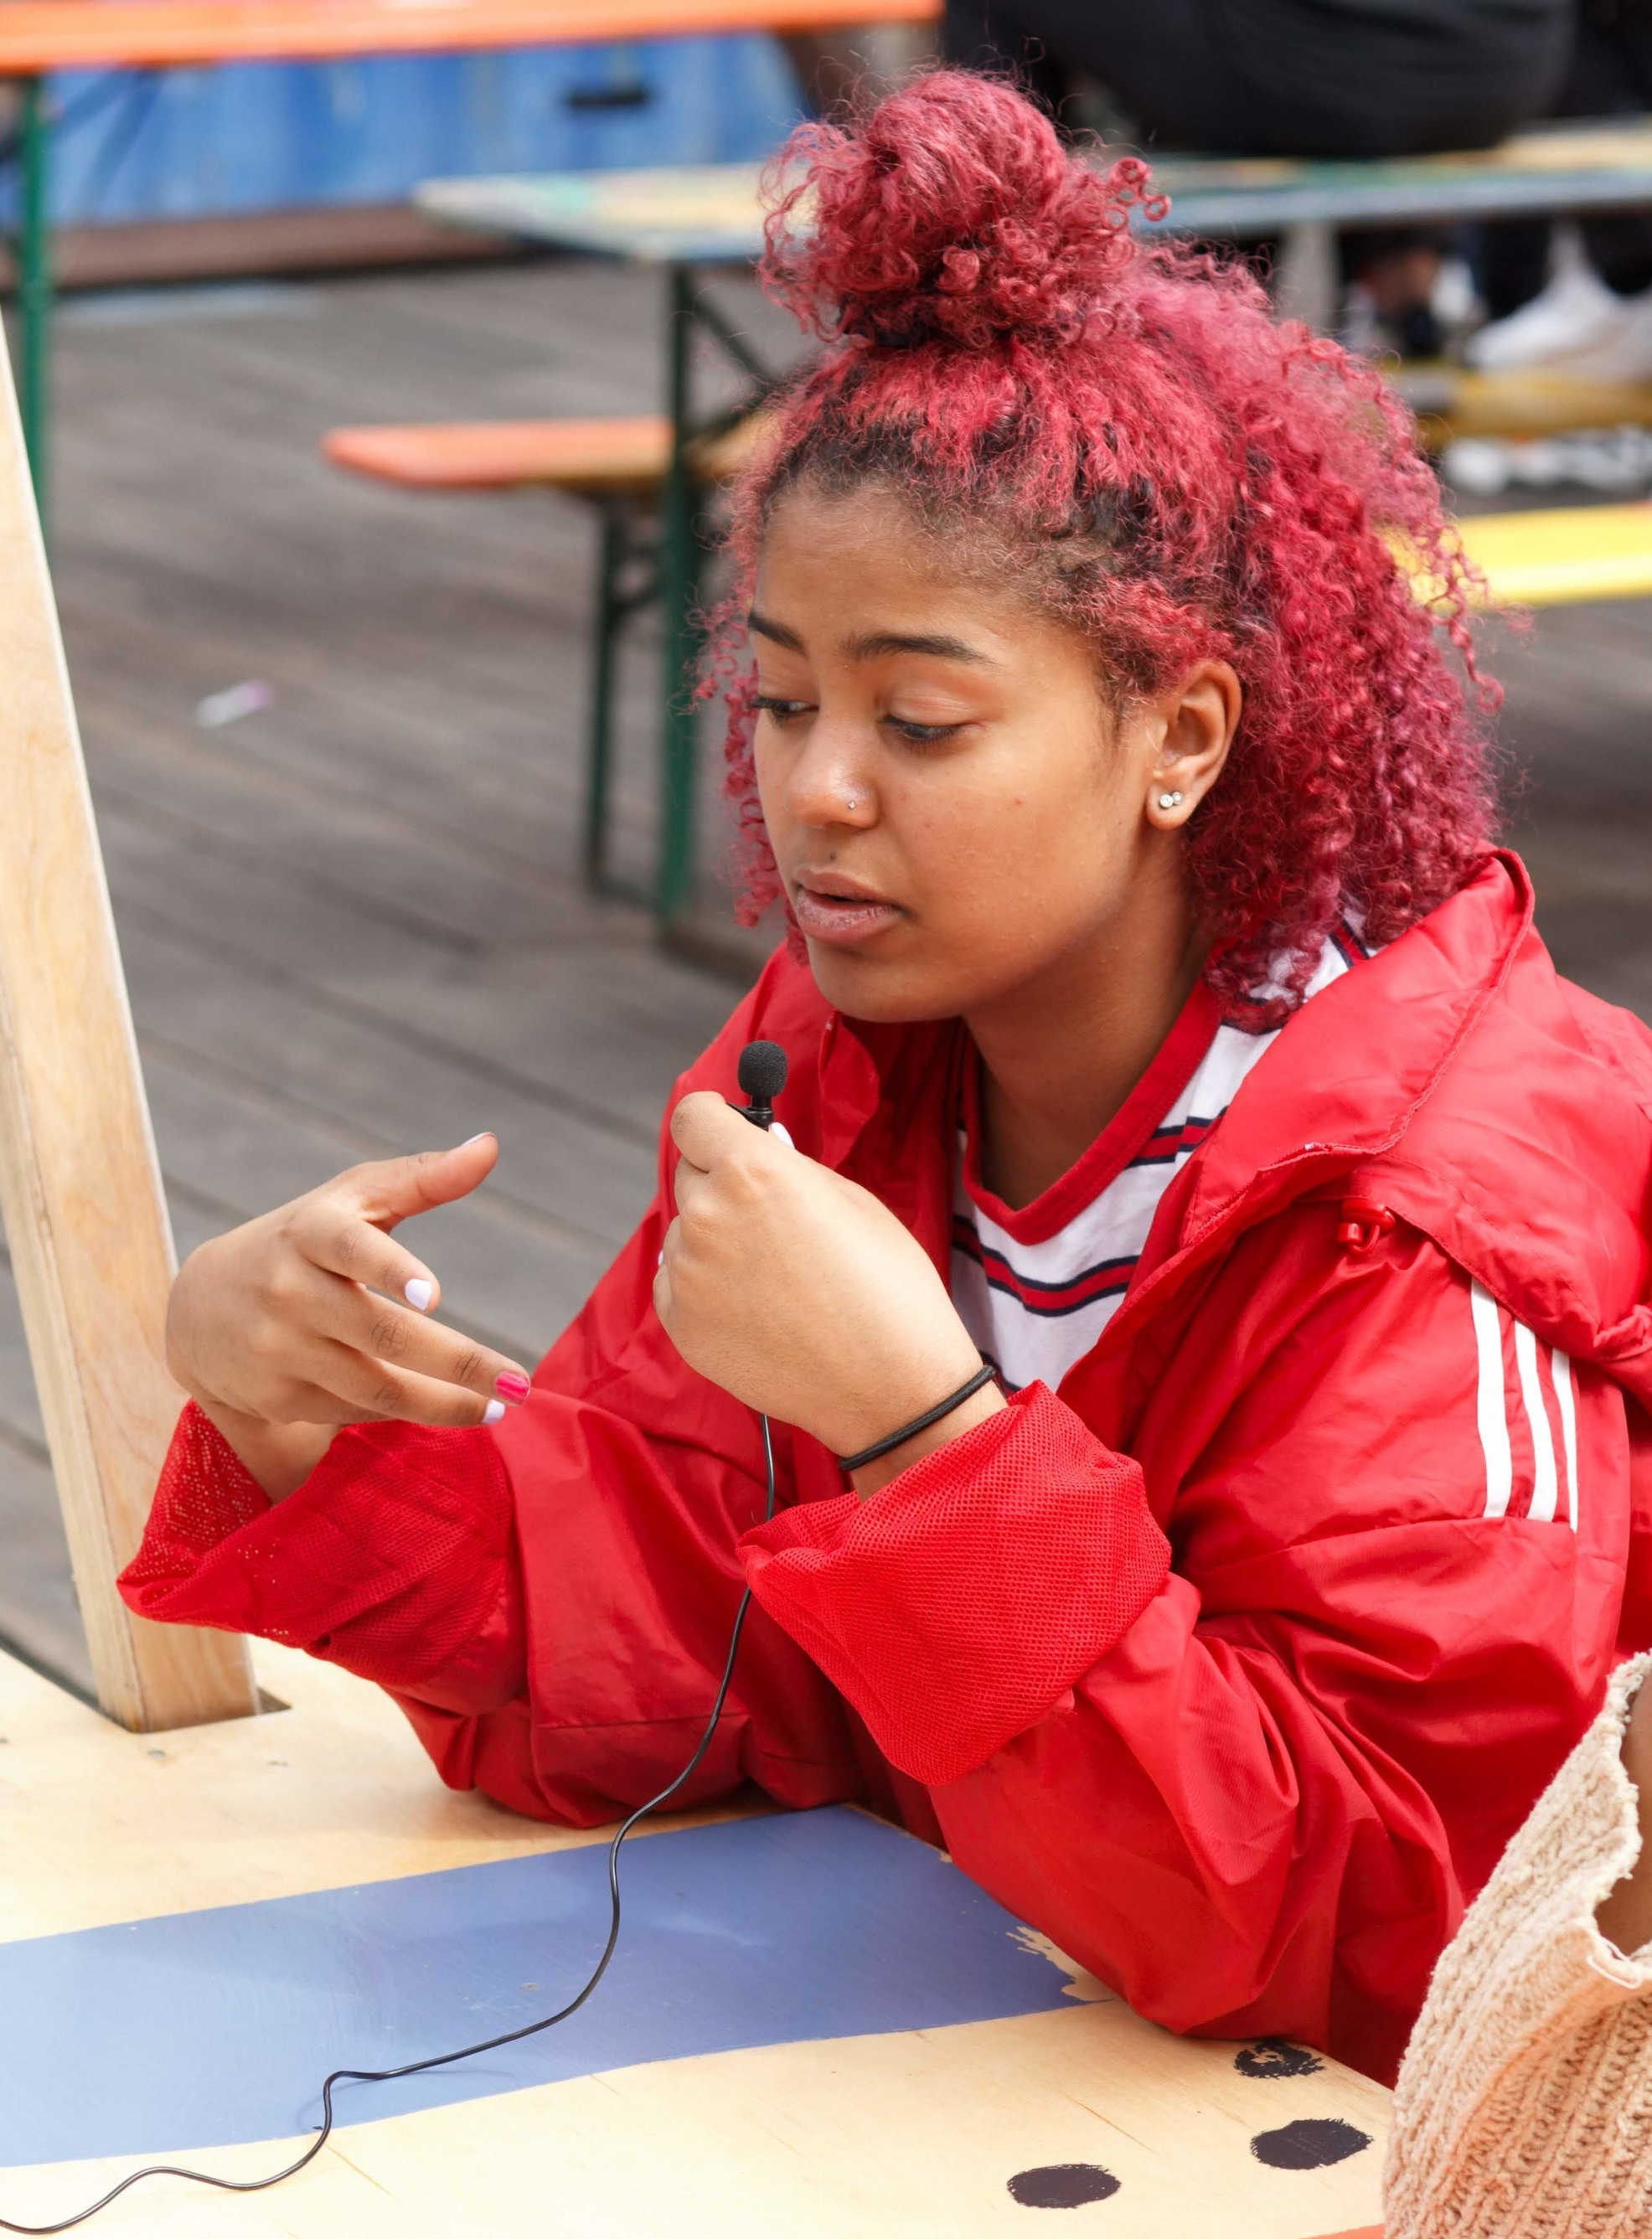 Ella learning new presenting skills during her work experience in July 2019!